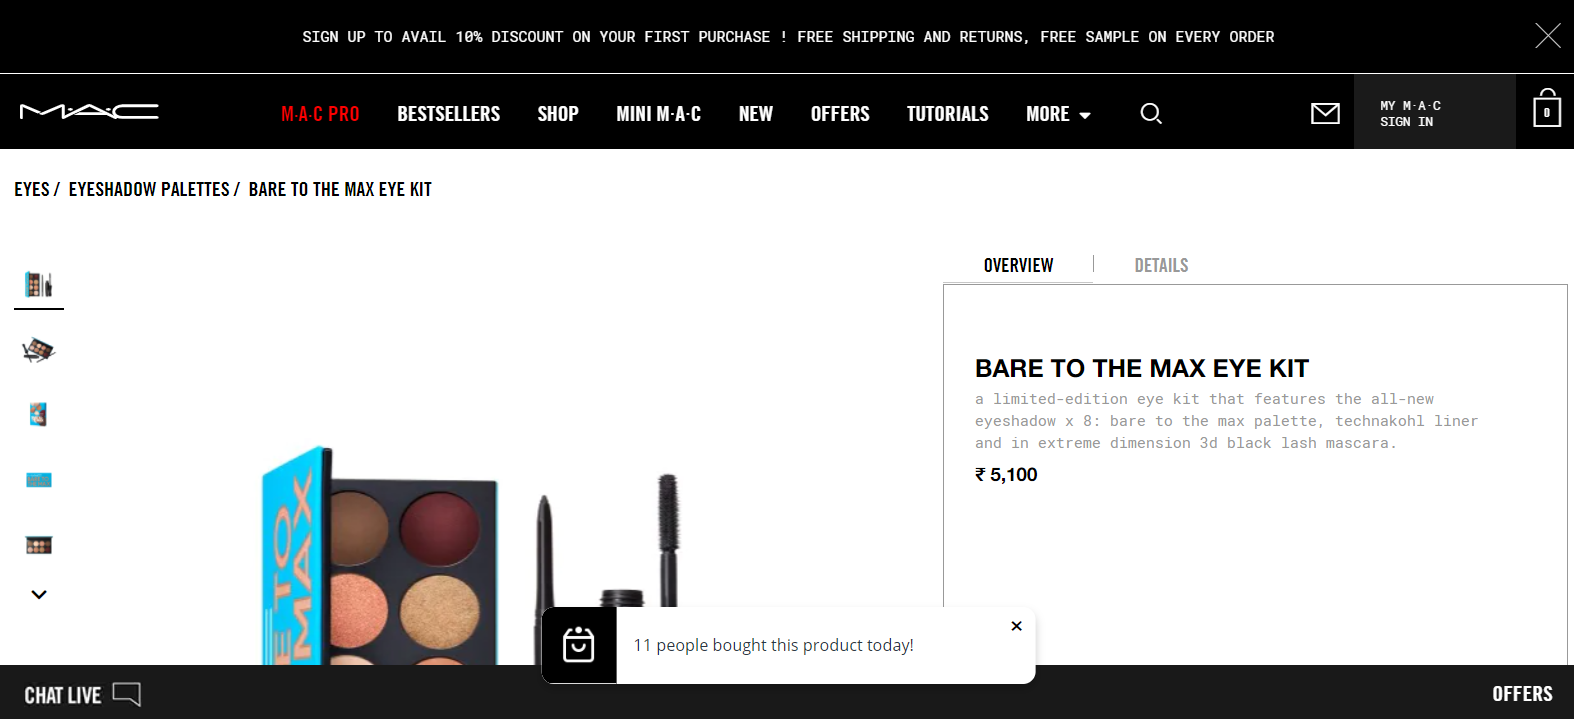 MAC Cosmetics drives product page conversions through gifting